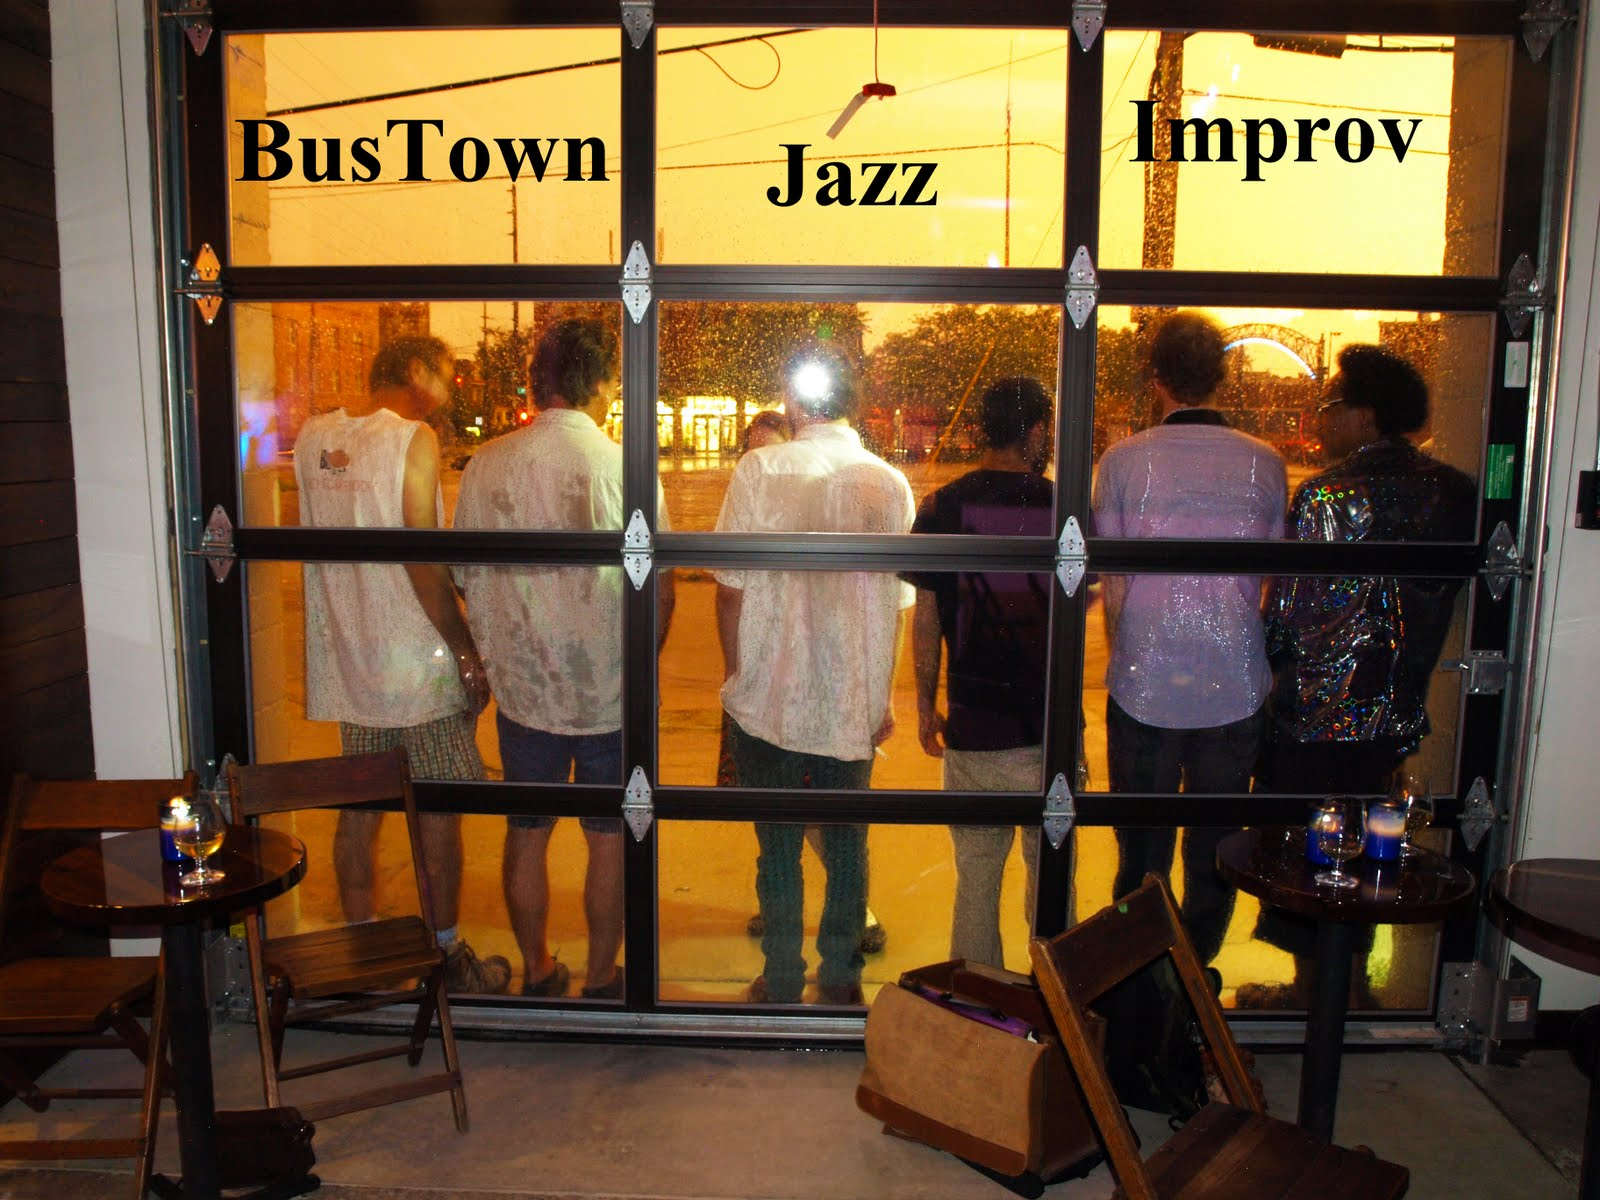 BusTown Music Jazz & Improv